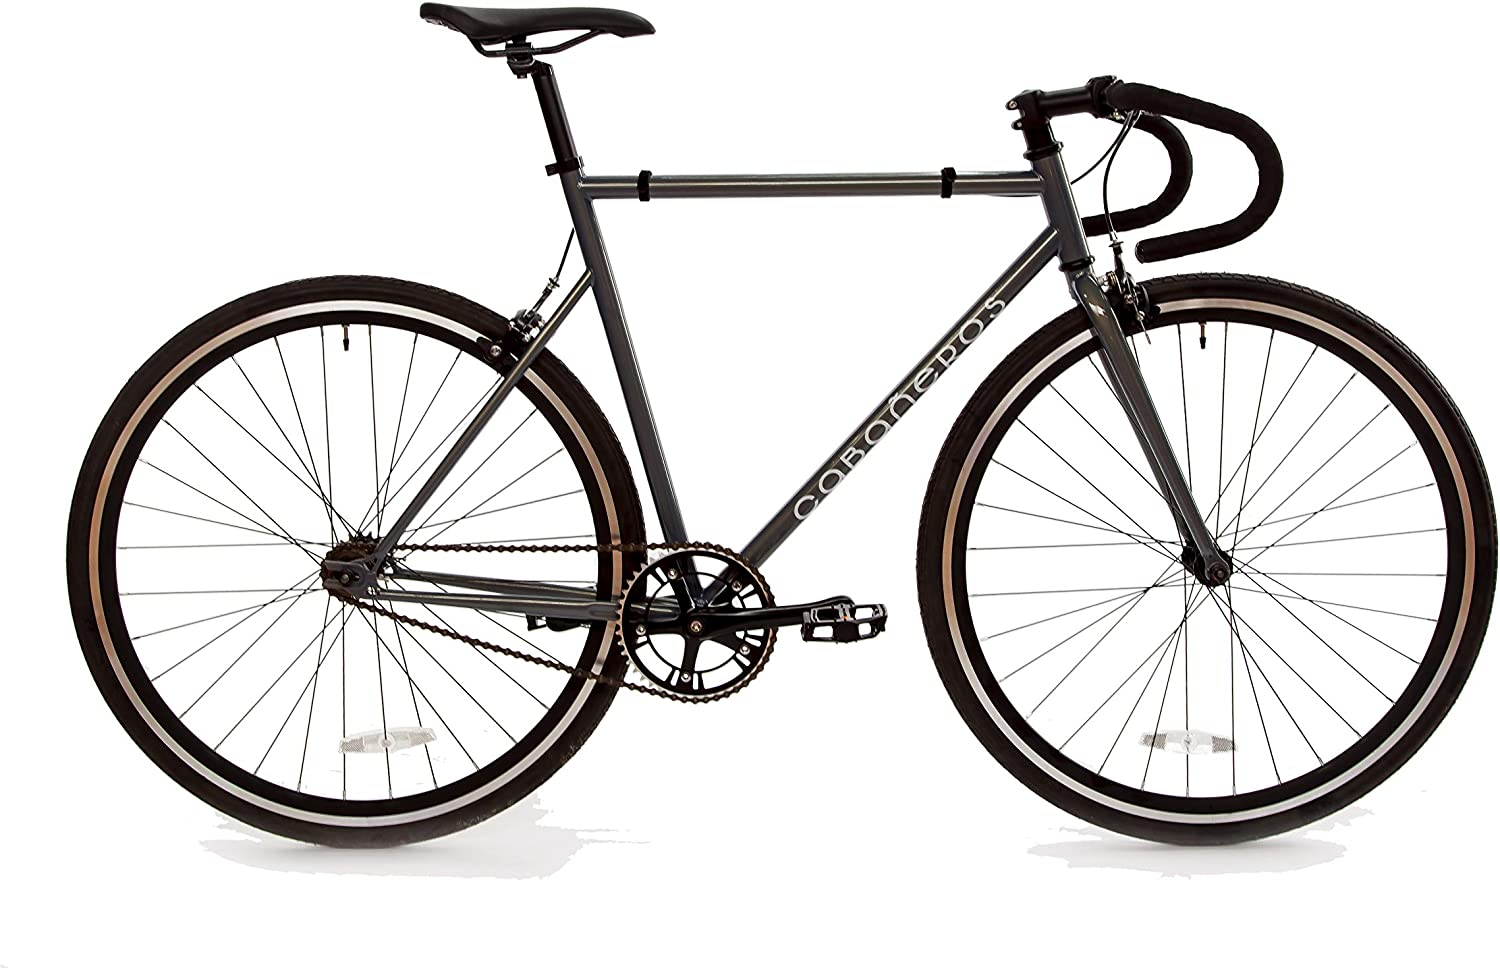 Cabablacks Bicycles 4130 Chromoly Road Bike Single Speed Fixed Gear Fixie Commuter Bicycle (Metallic Grey, 56cm(L))